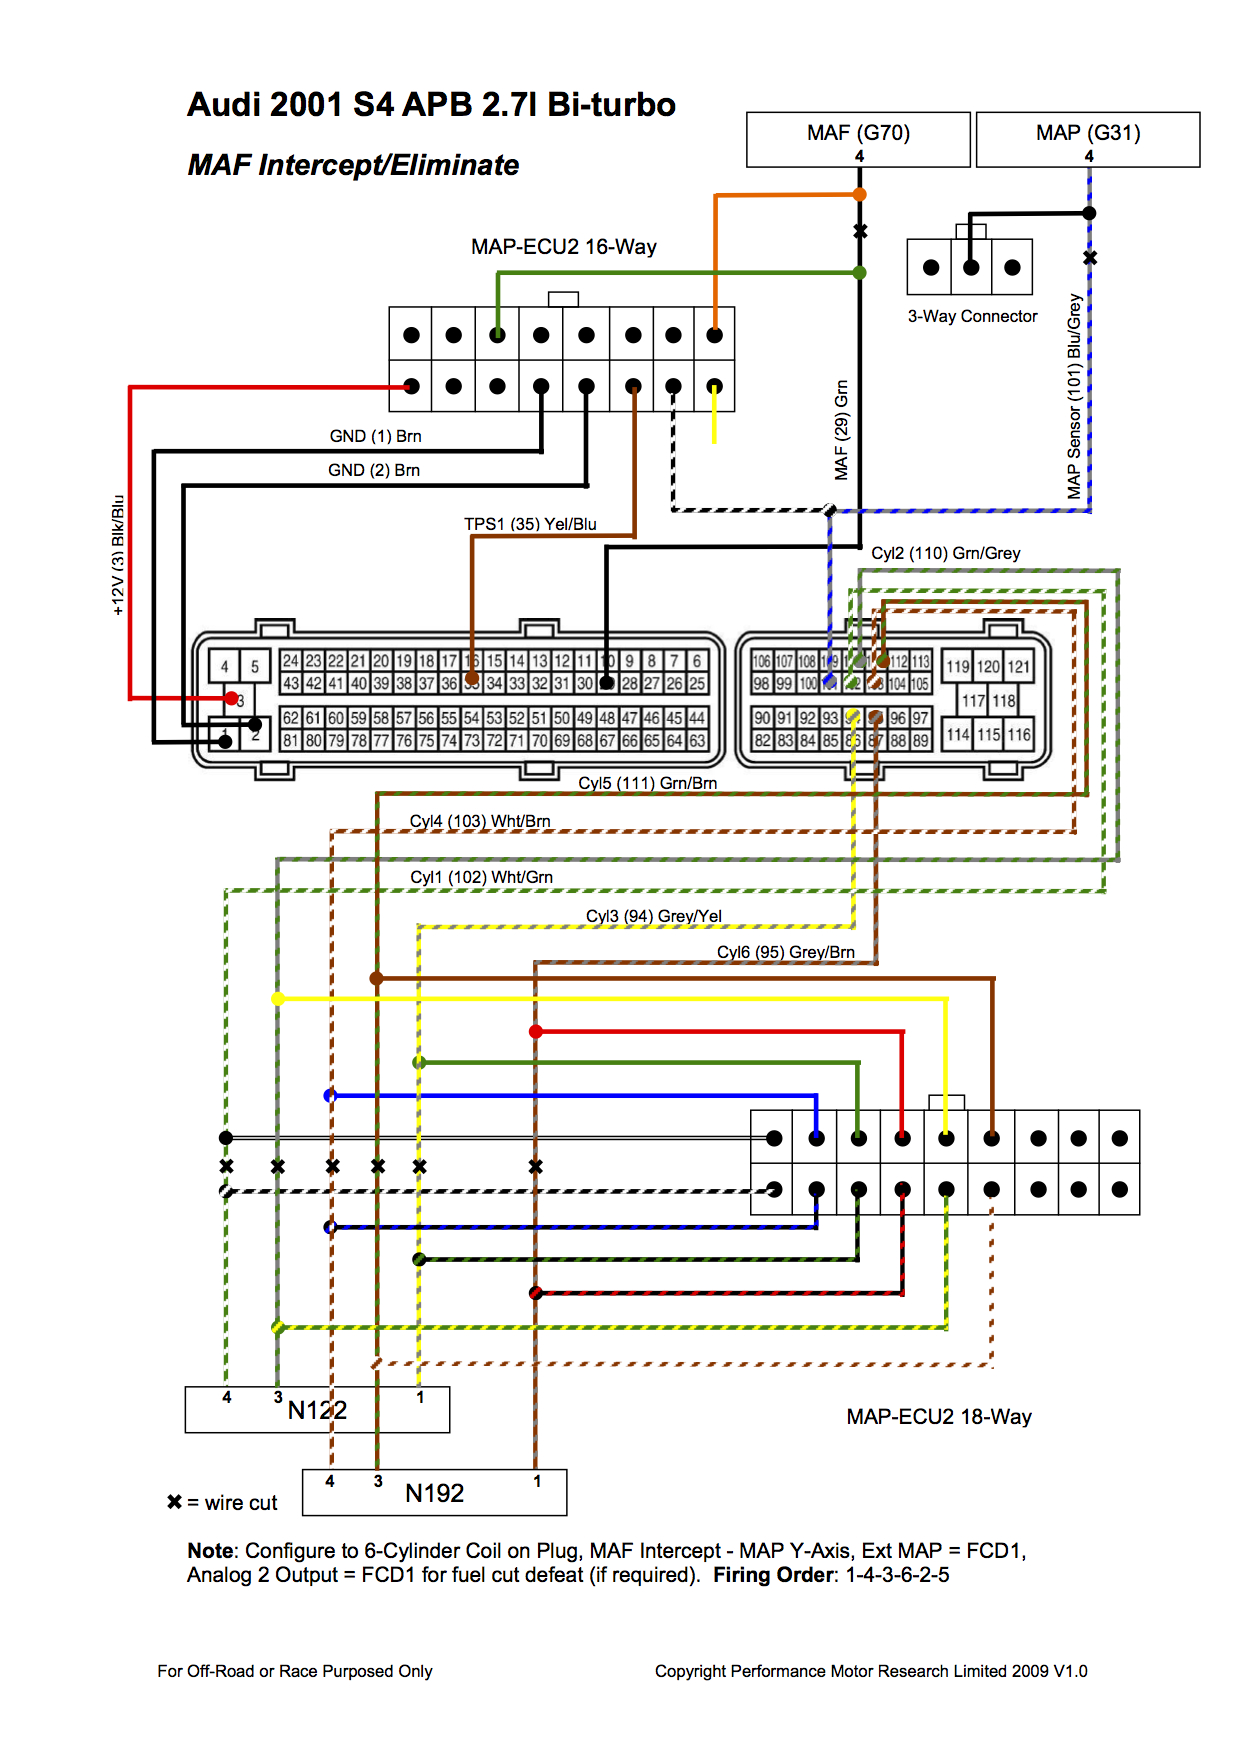 Audi S4 20011 ecu wiring diagram paccar ecu wiring diagram \u2022 wiring diagrams j bmw 318i radio wiring diagram at gsmx.co